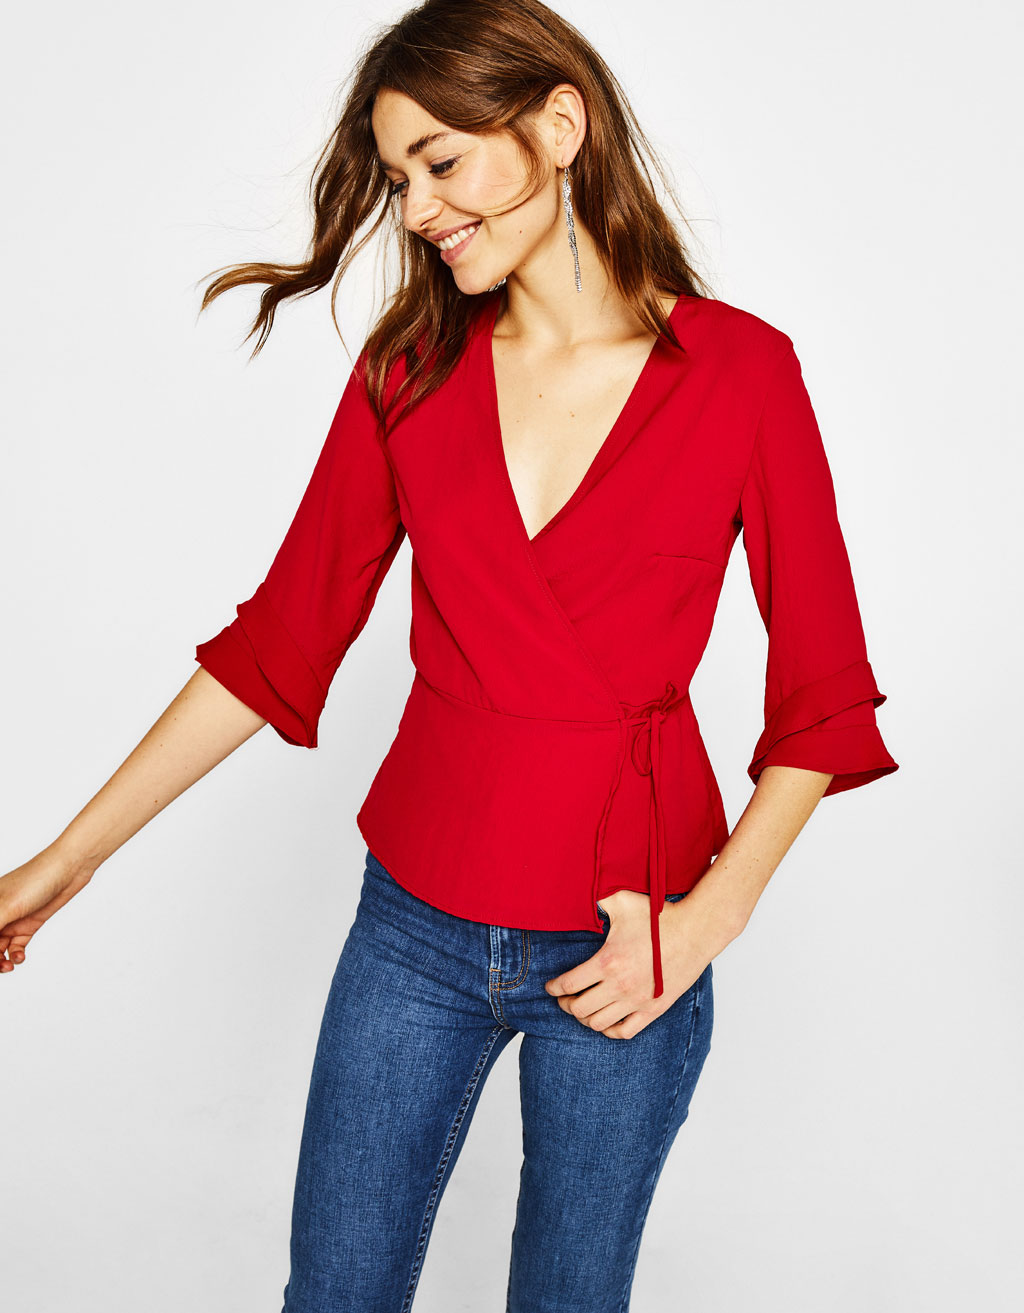 Crossover shirt with 3/4 length sleeves